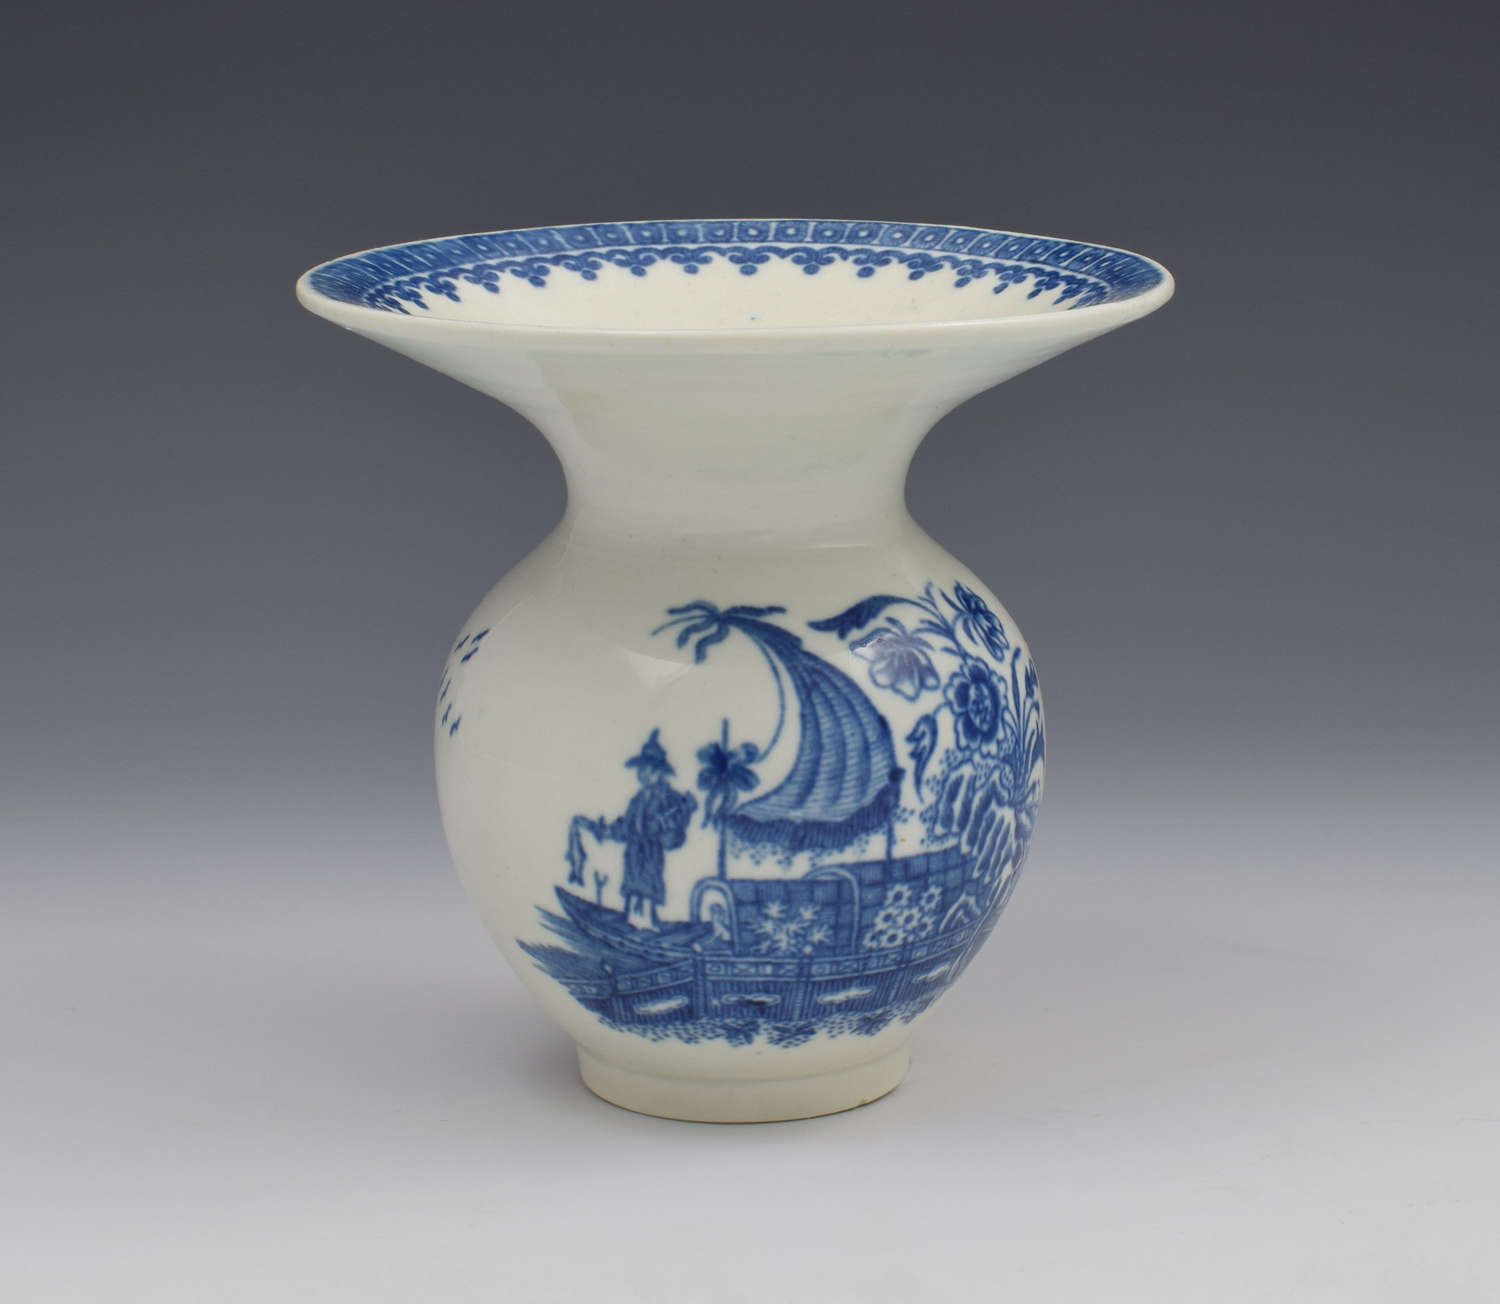 Rare First Period Worcester Spittoon Fisherman & Cormorant Pattern